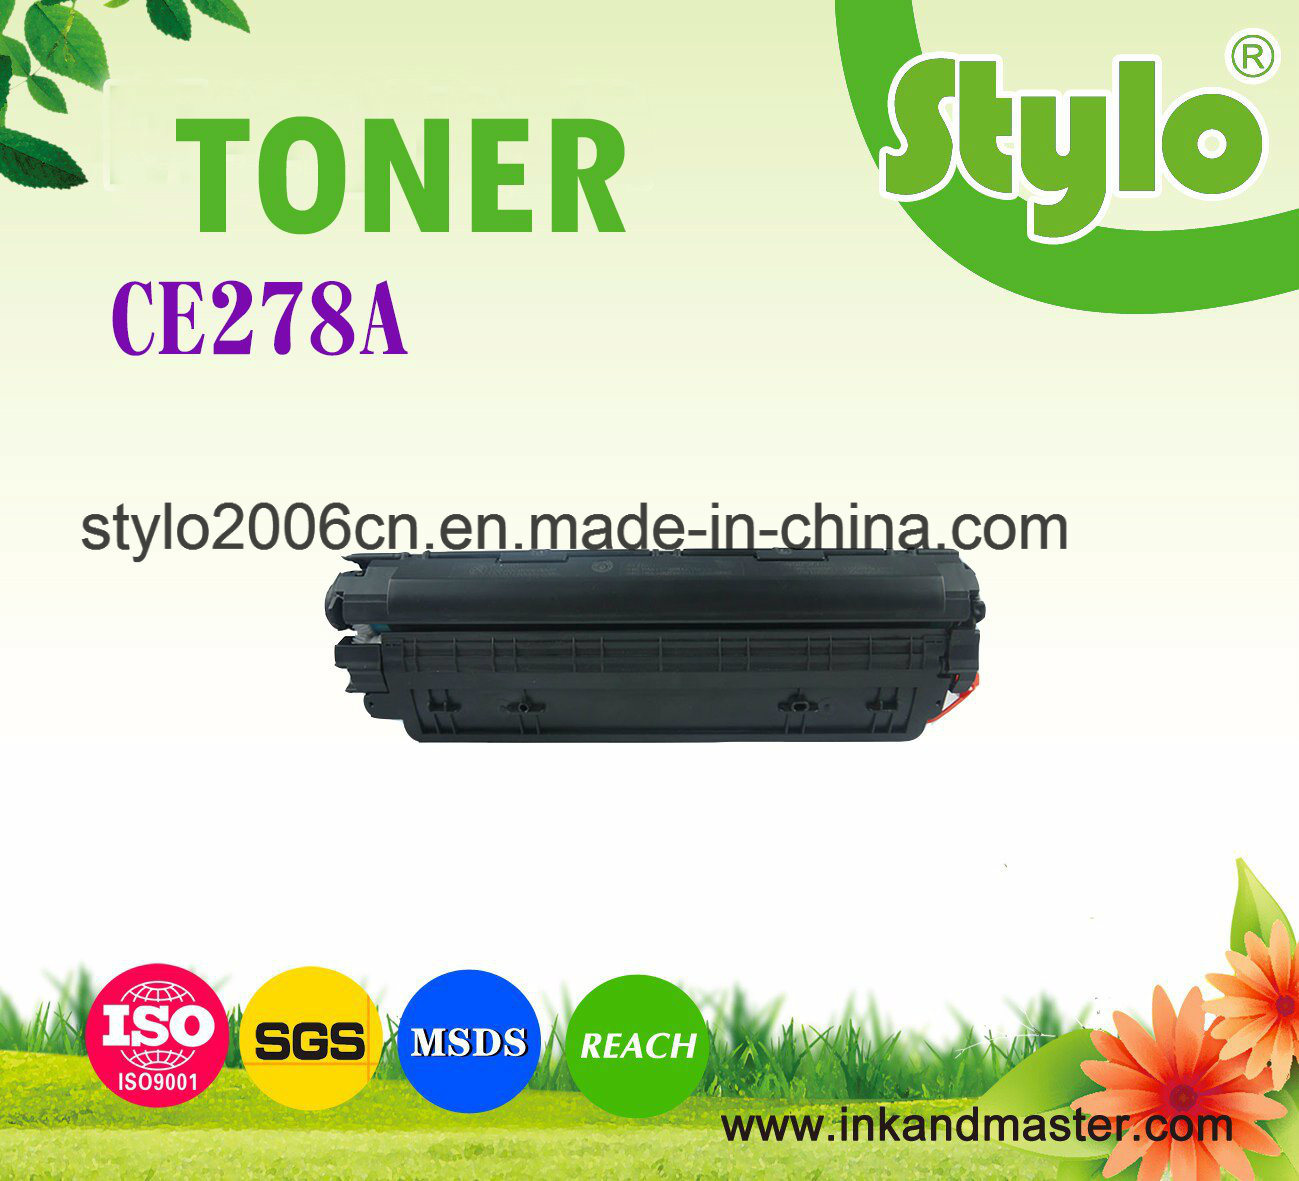 Ce278A Laser Toner Cartridge for P1566/1606dn/M1536dnf/M1530/1506